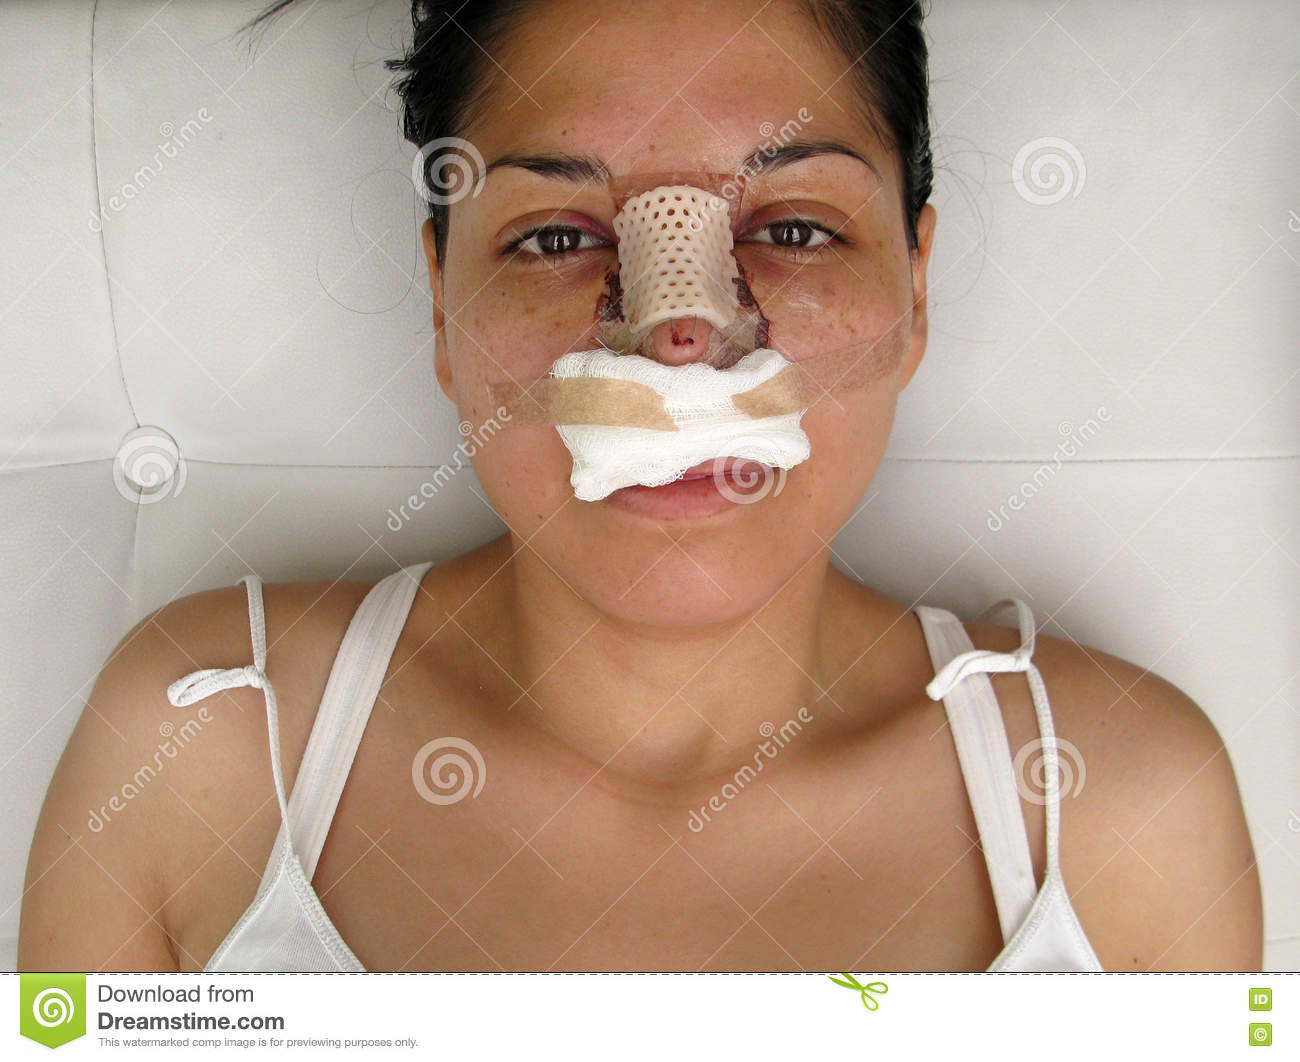 Portrait Of A Woman With Her Nose Heavily Bandaged  Stock Photo